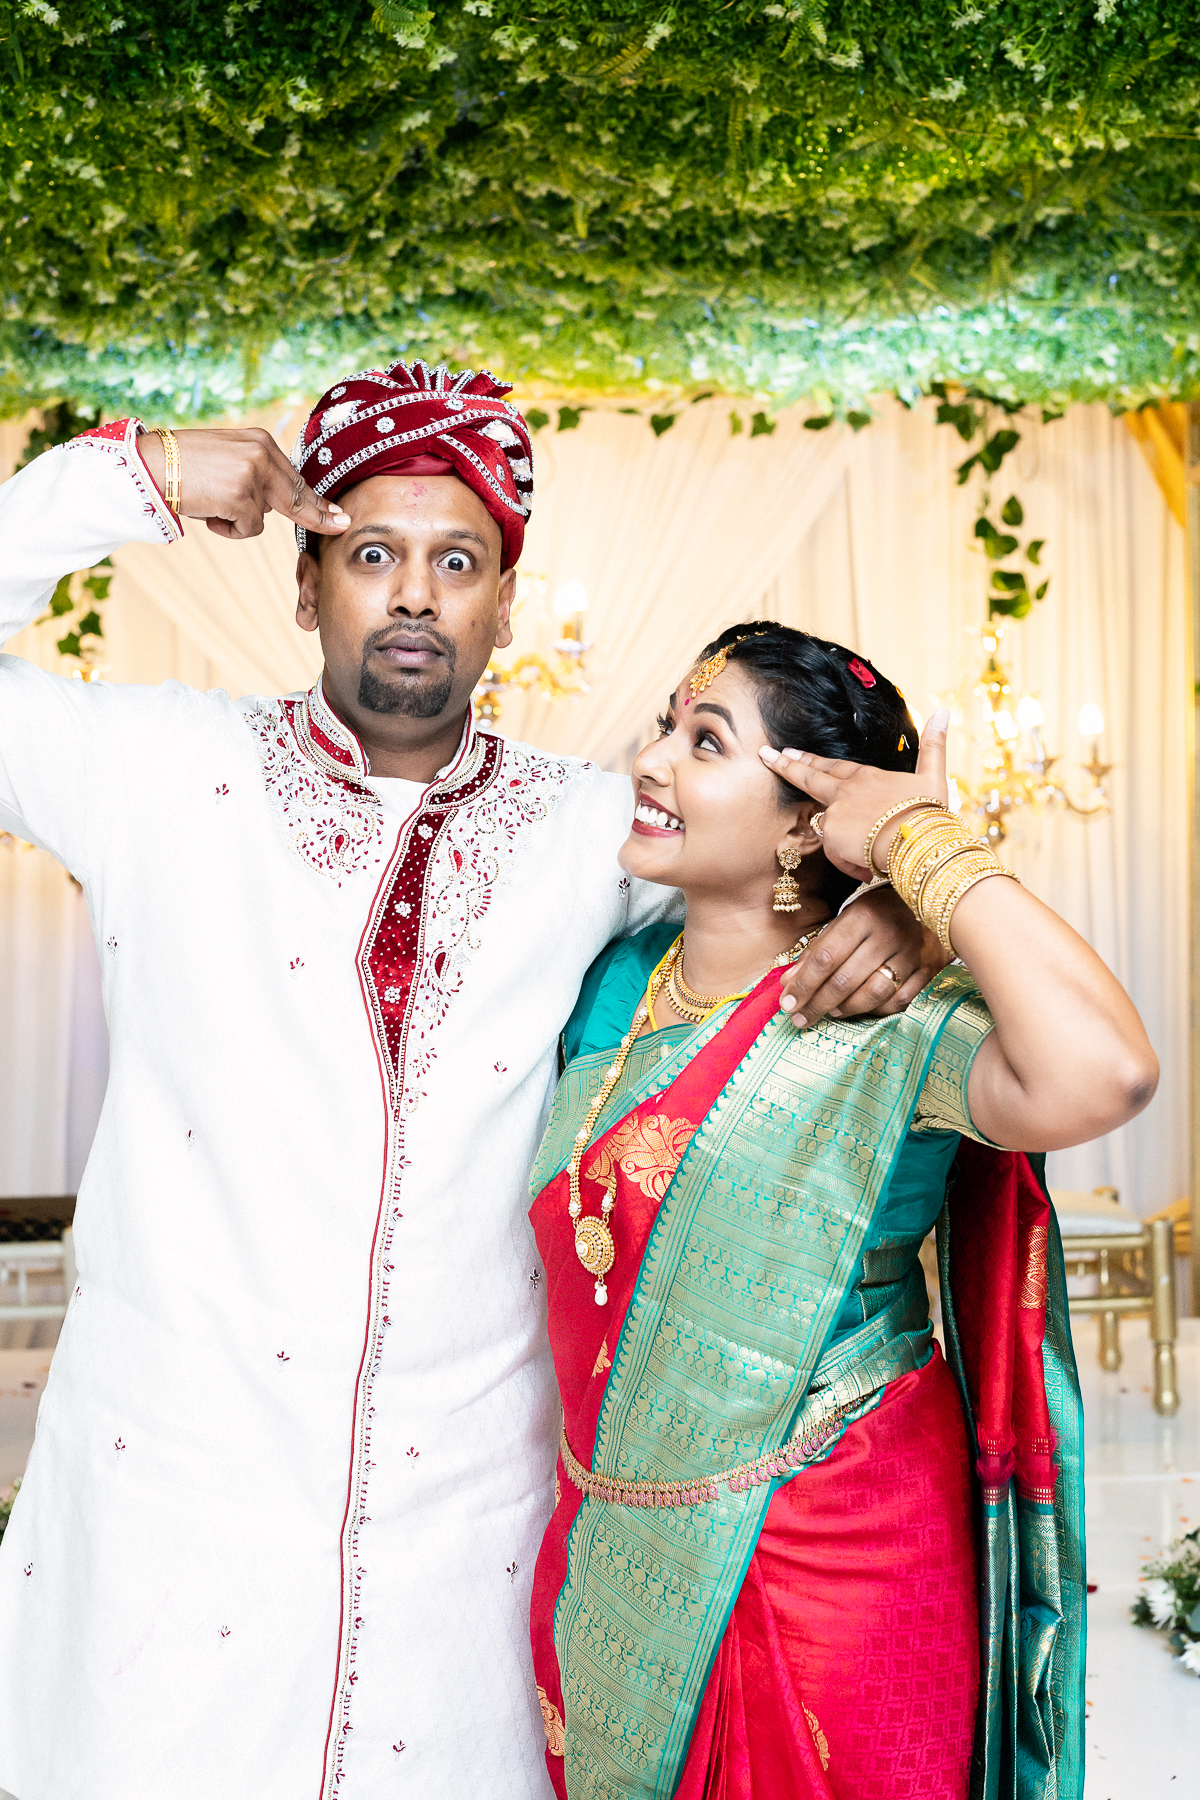 Durban-wedding-photographers-Durga-13.jpg